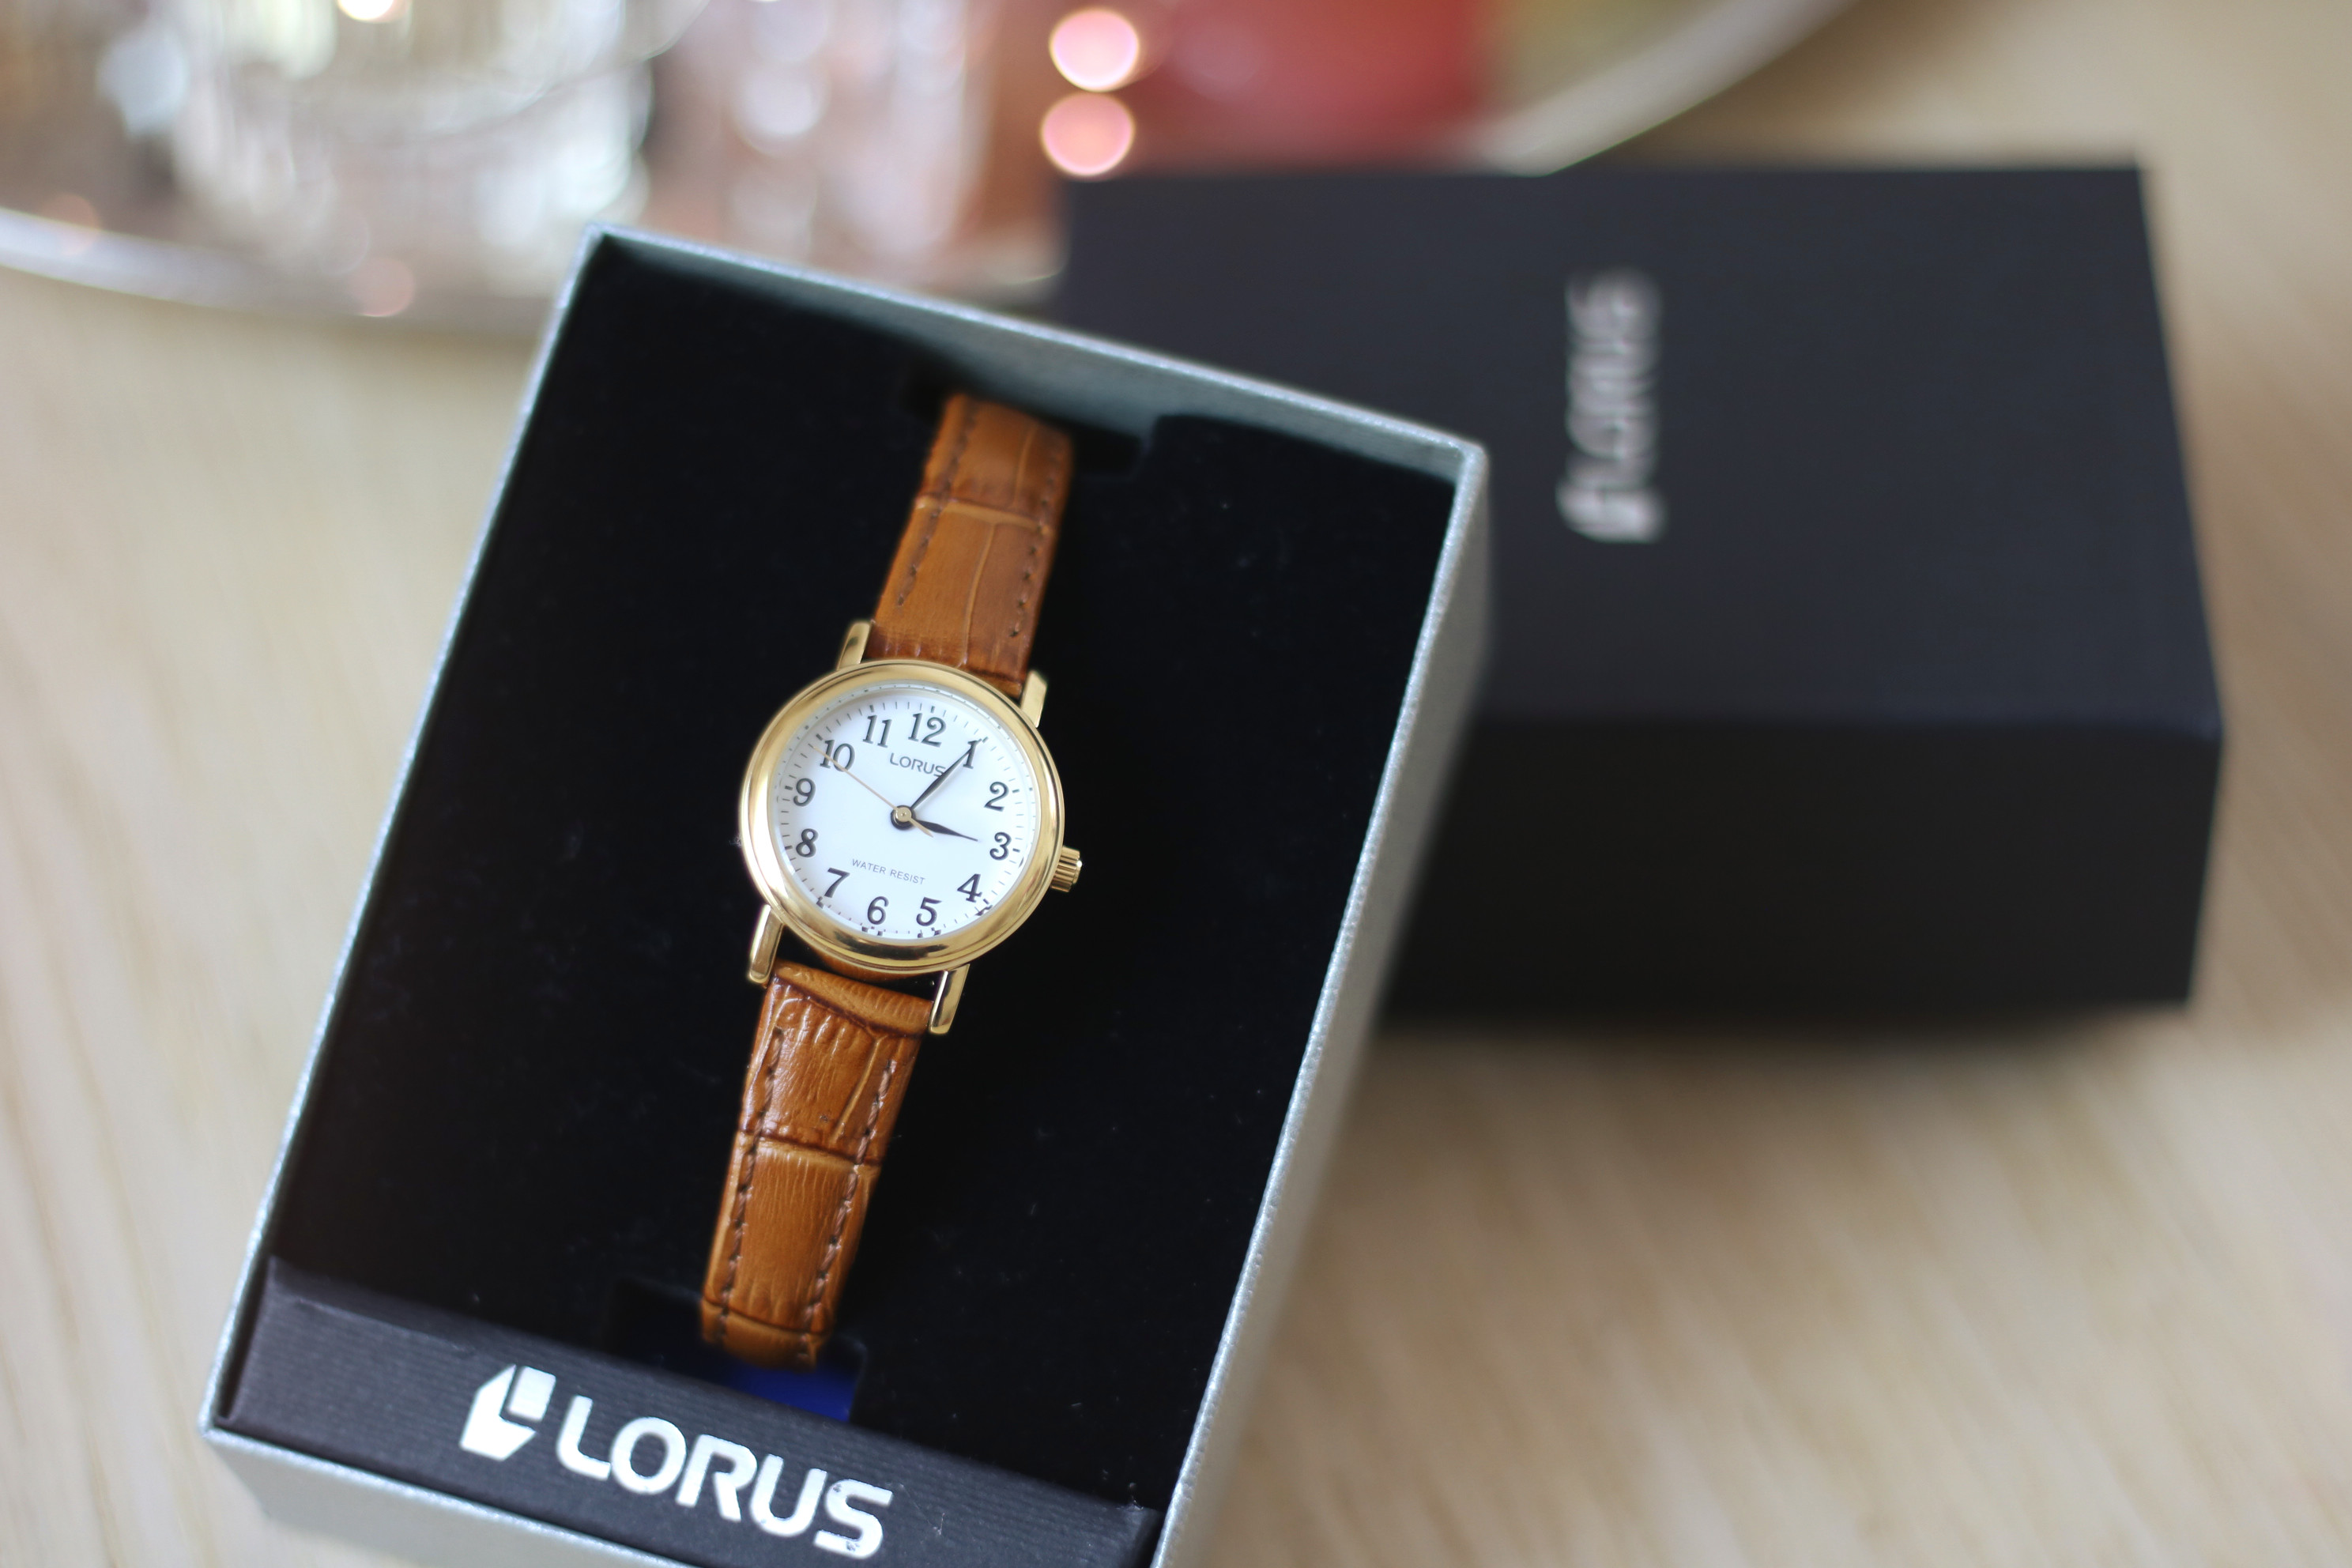 New In: Lorus Watch From Horloge.be!